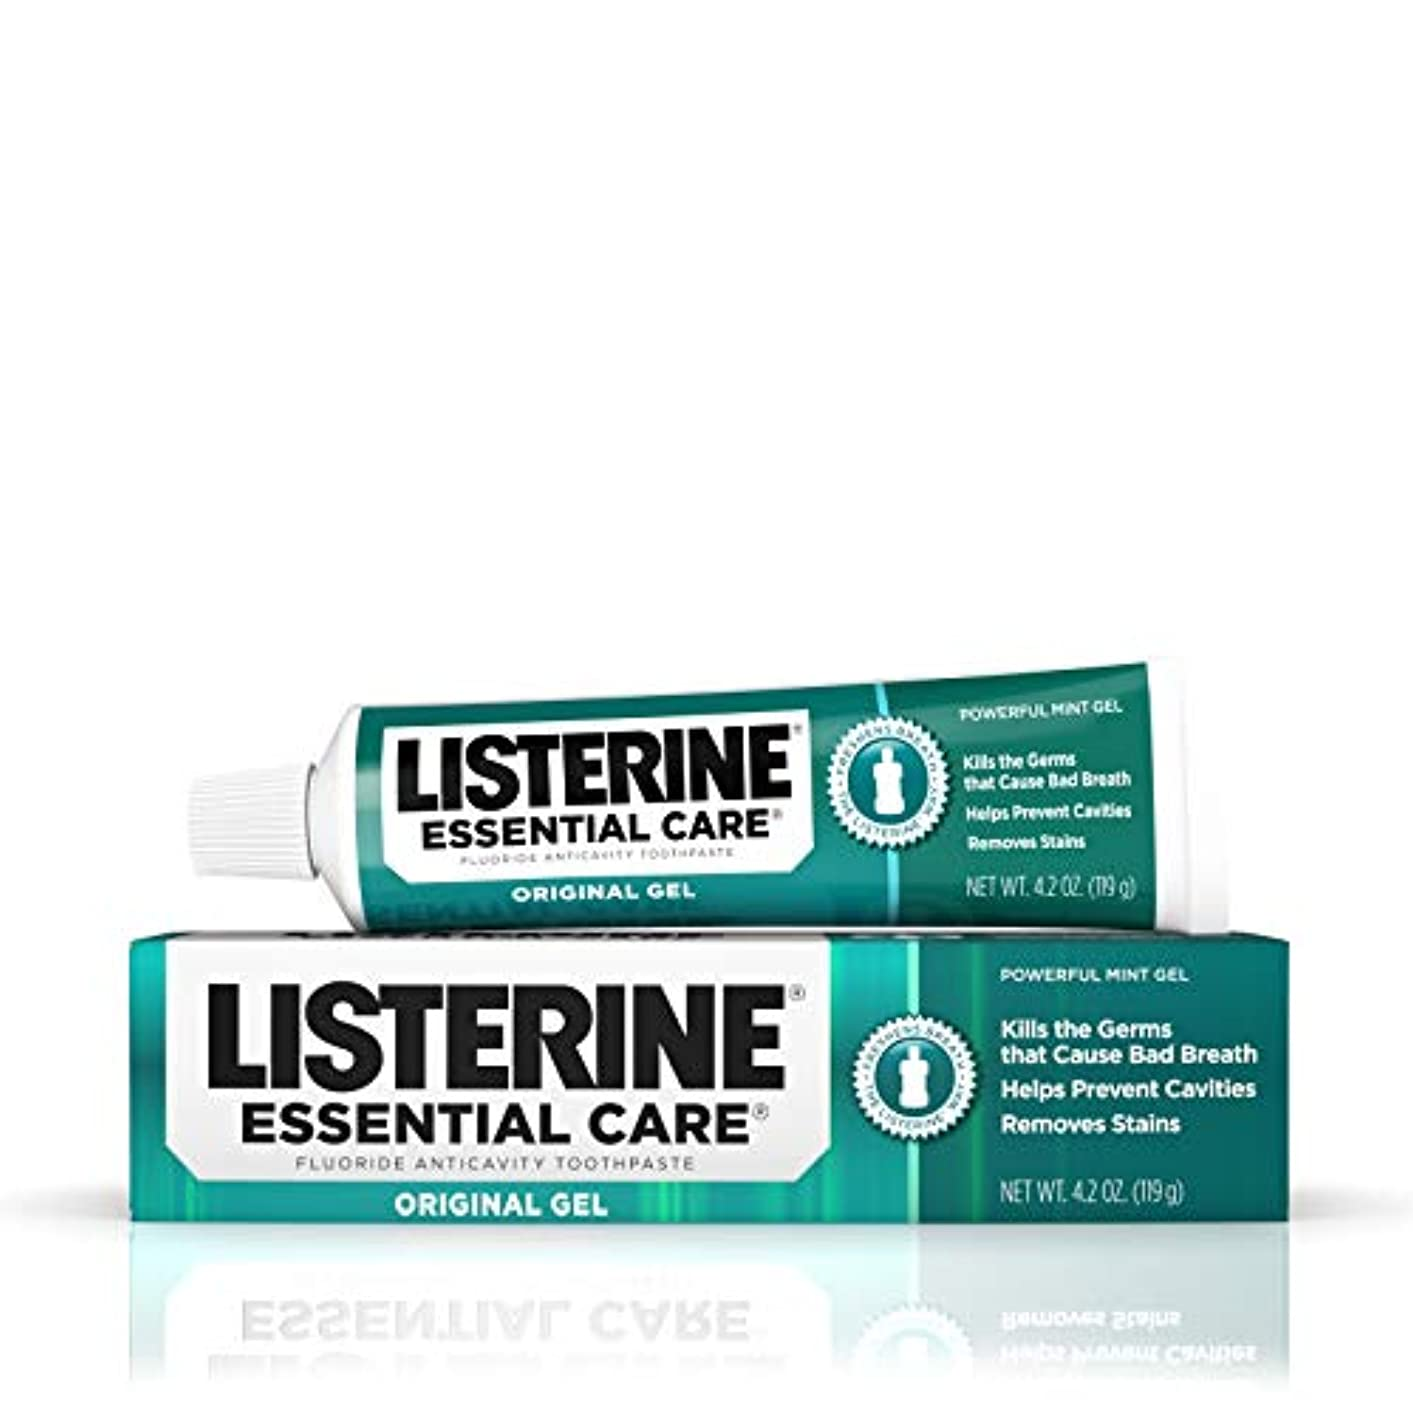 結婚した使用法帽子海外直送品Listerine Essential Care Toothpaste Gel Original, Powerful Mint 4.2 oz by Listerine